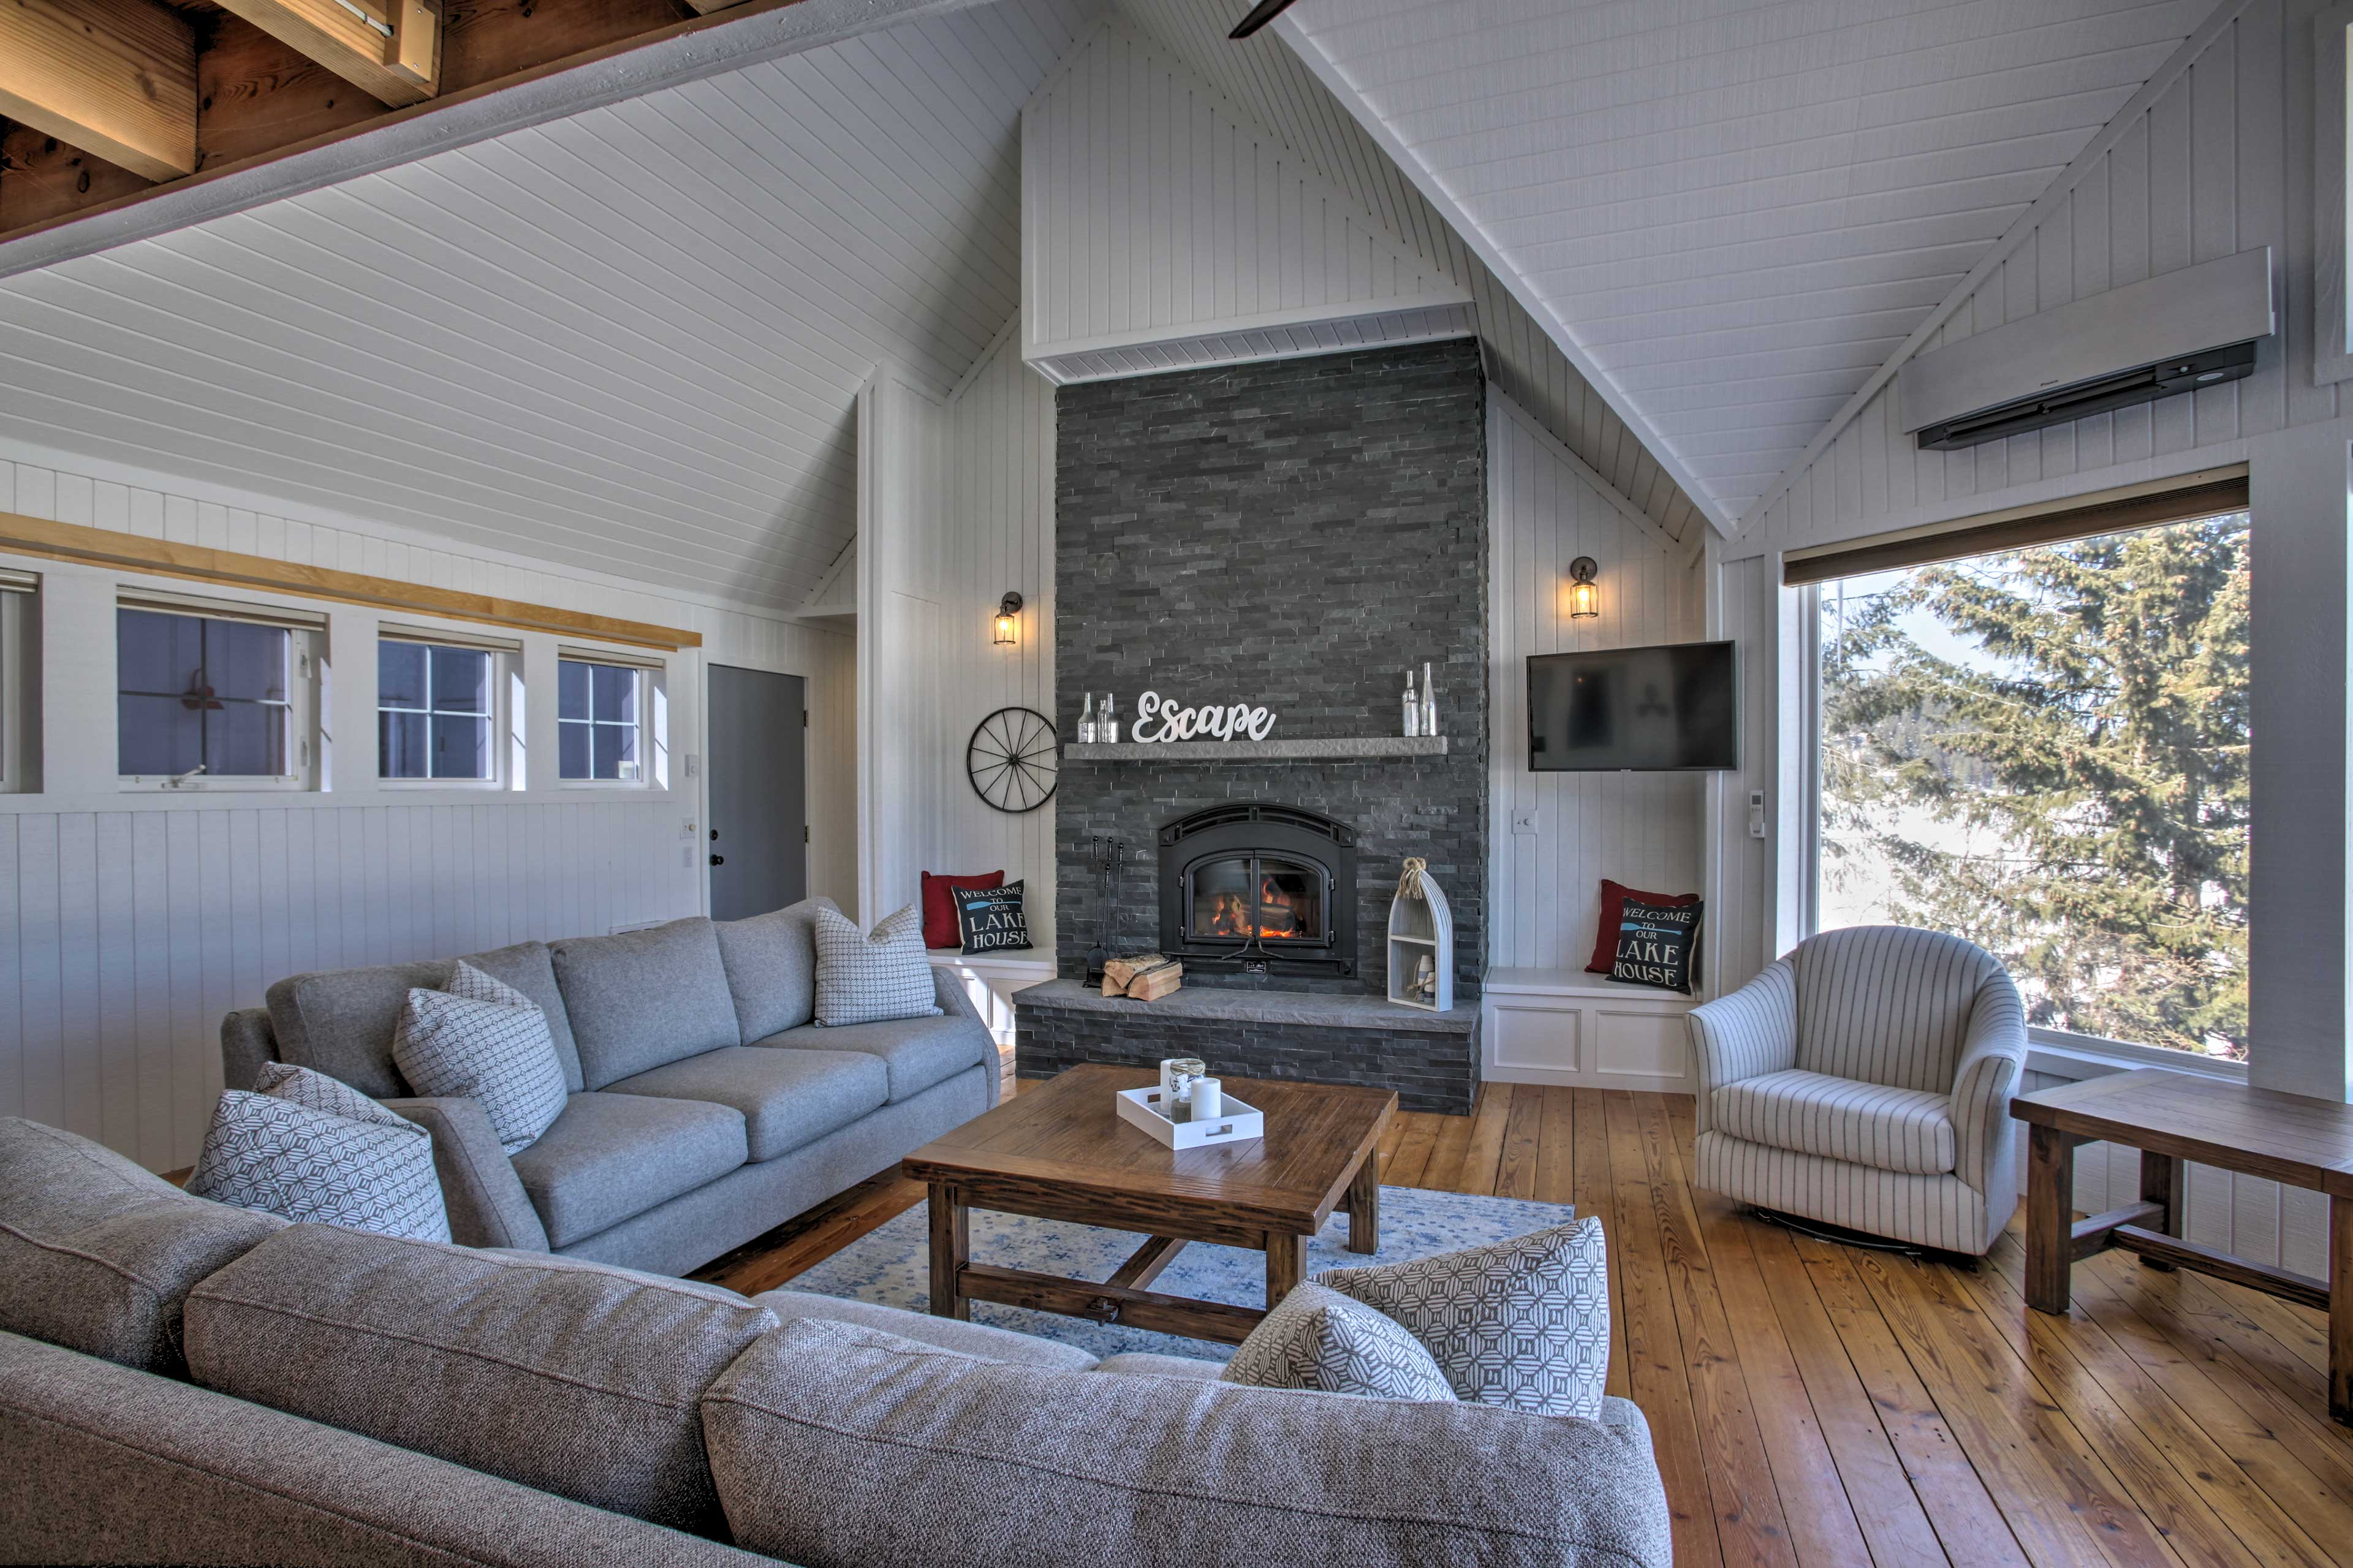 Cozy up in front of the wood-burning fireplace and Smart TV.